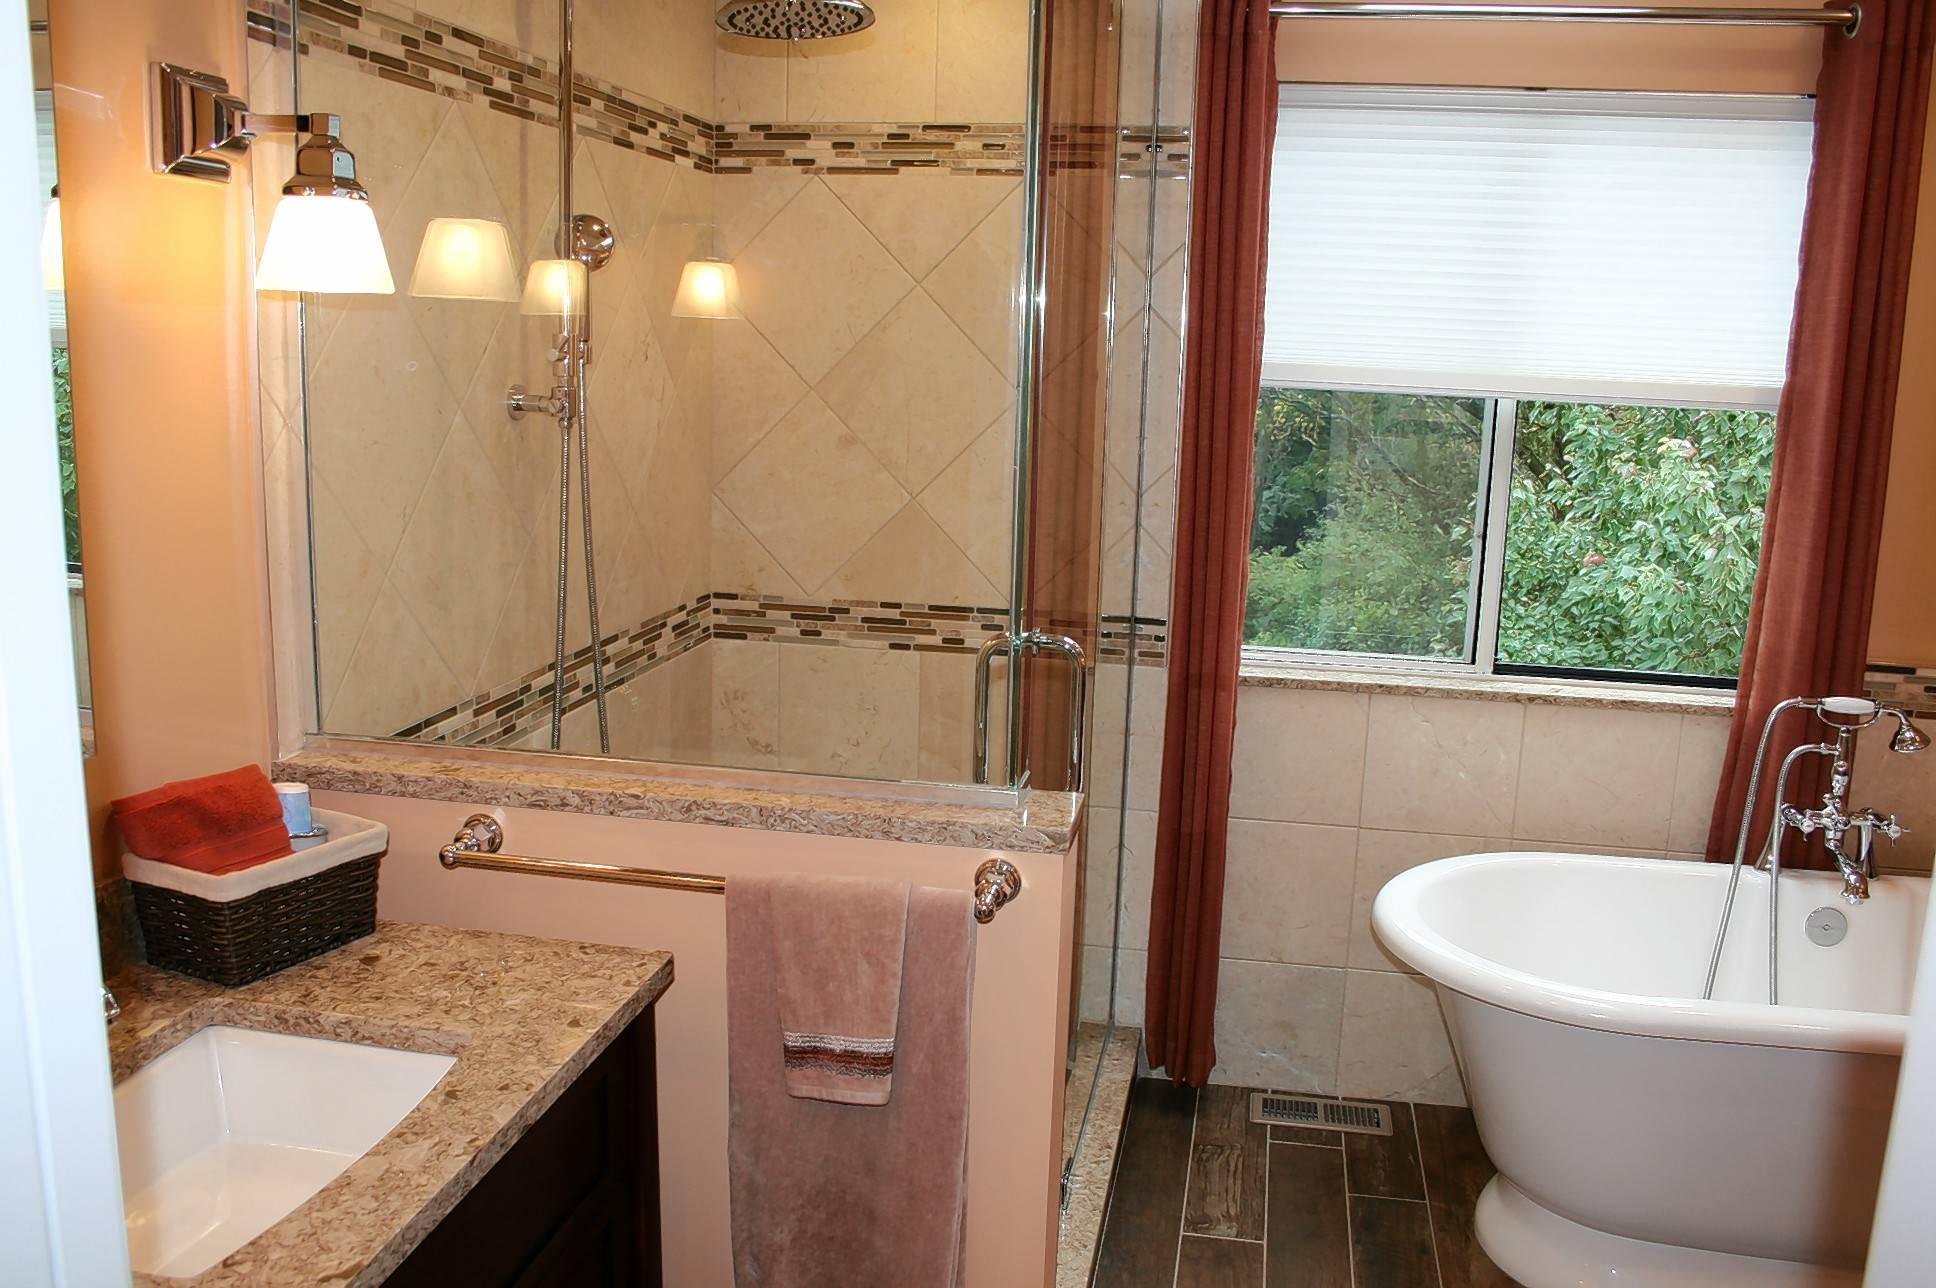 The common shower and tub have undergone a renaissance in design improvements since the 1950s and '60s.